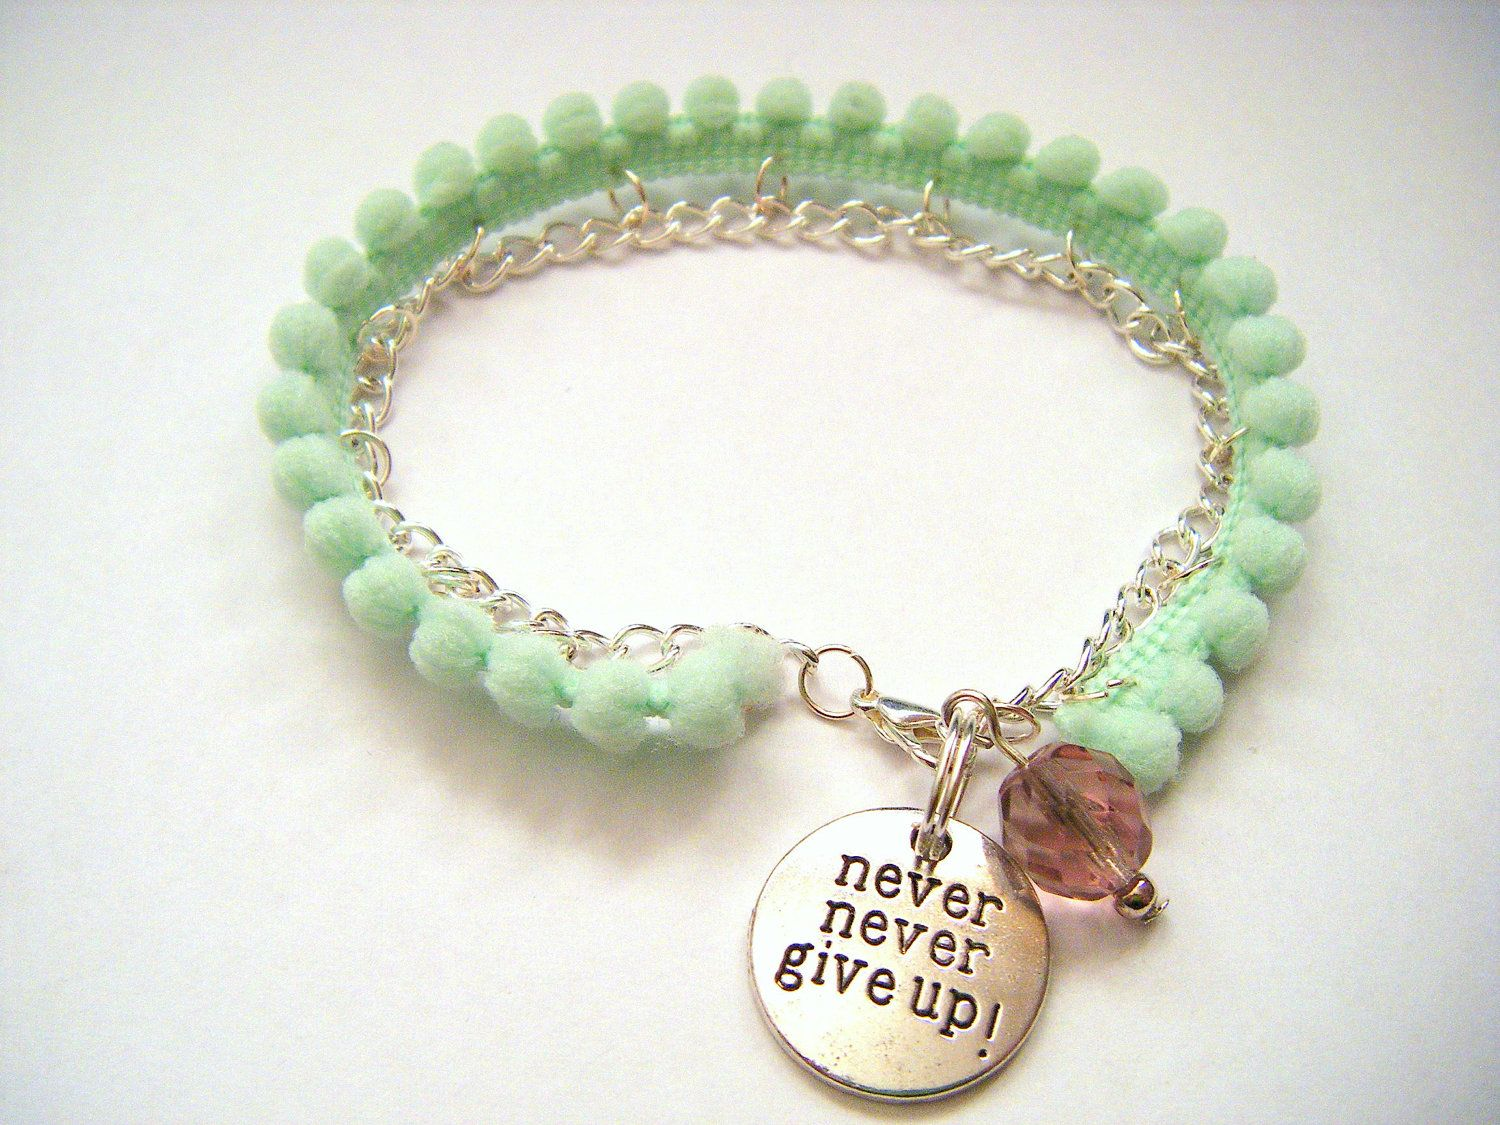 products hodgkin green lime lymphoma mental charity awareness non bracelet buy mysticmoon health